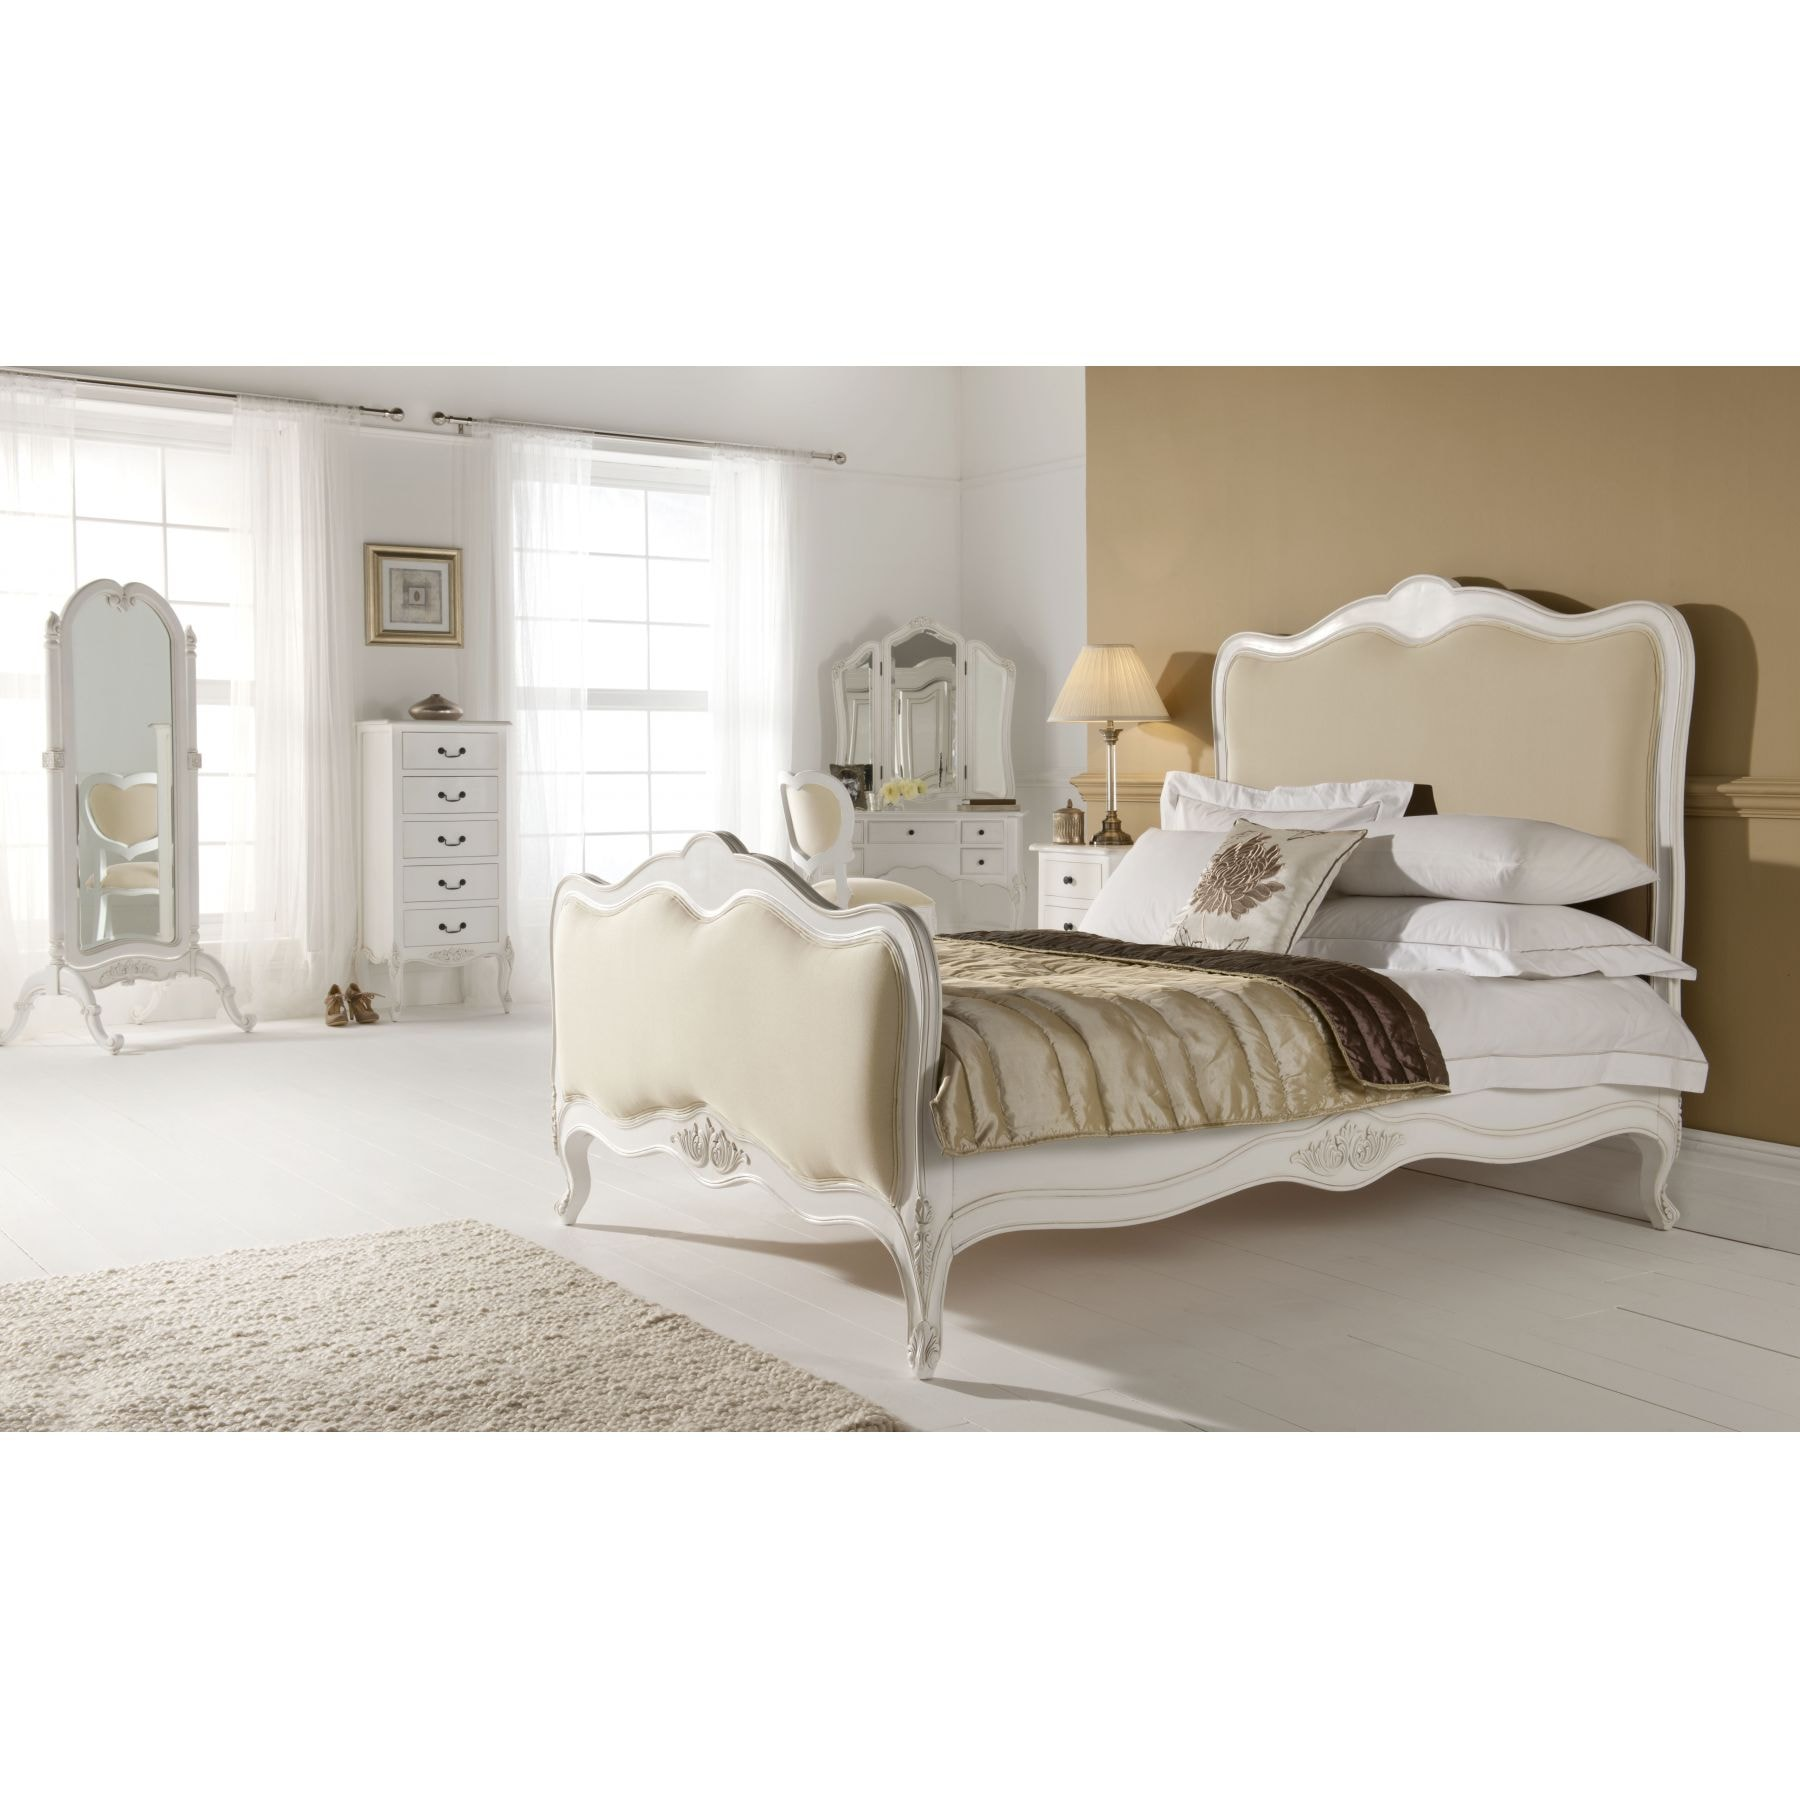 Parisian Style Bedroom Furniture This Fantastic Paris Antique French Bed Works Wonderfully